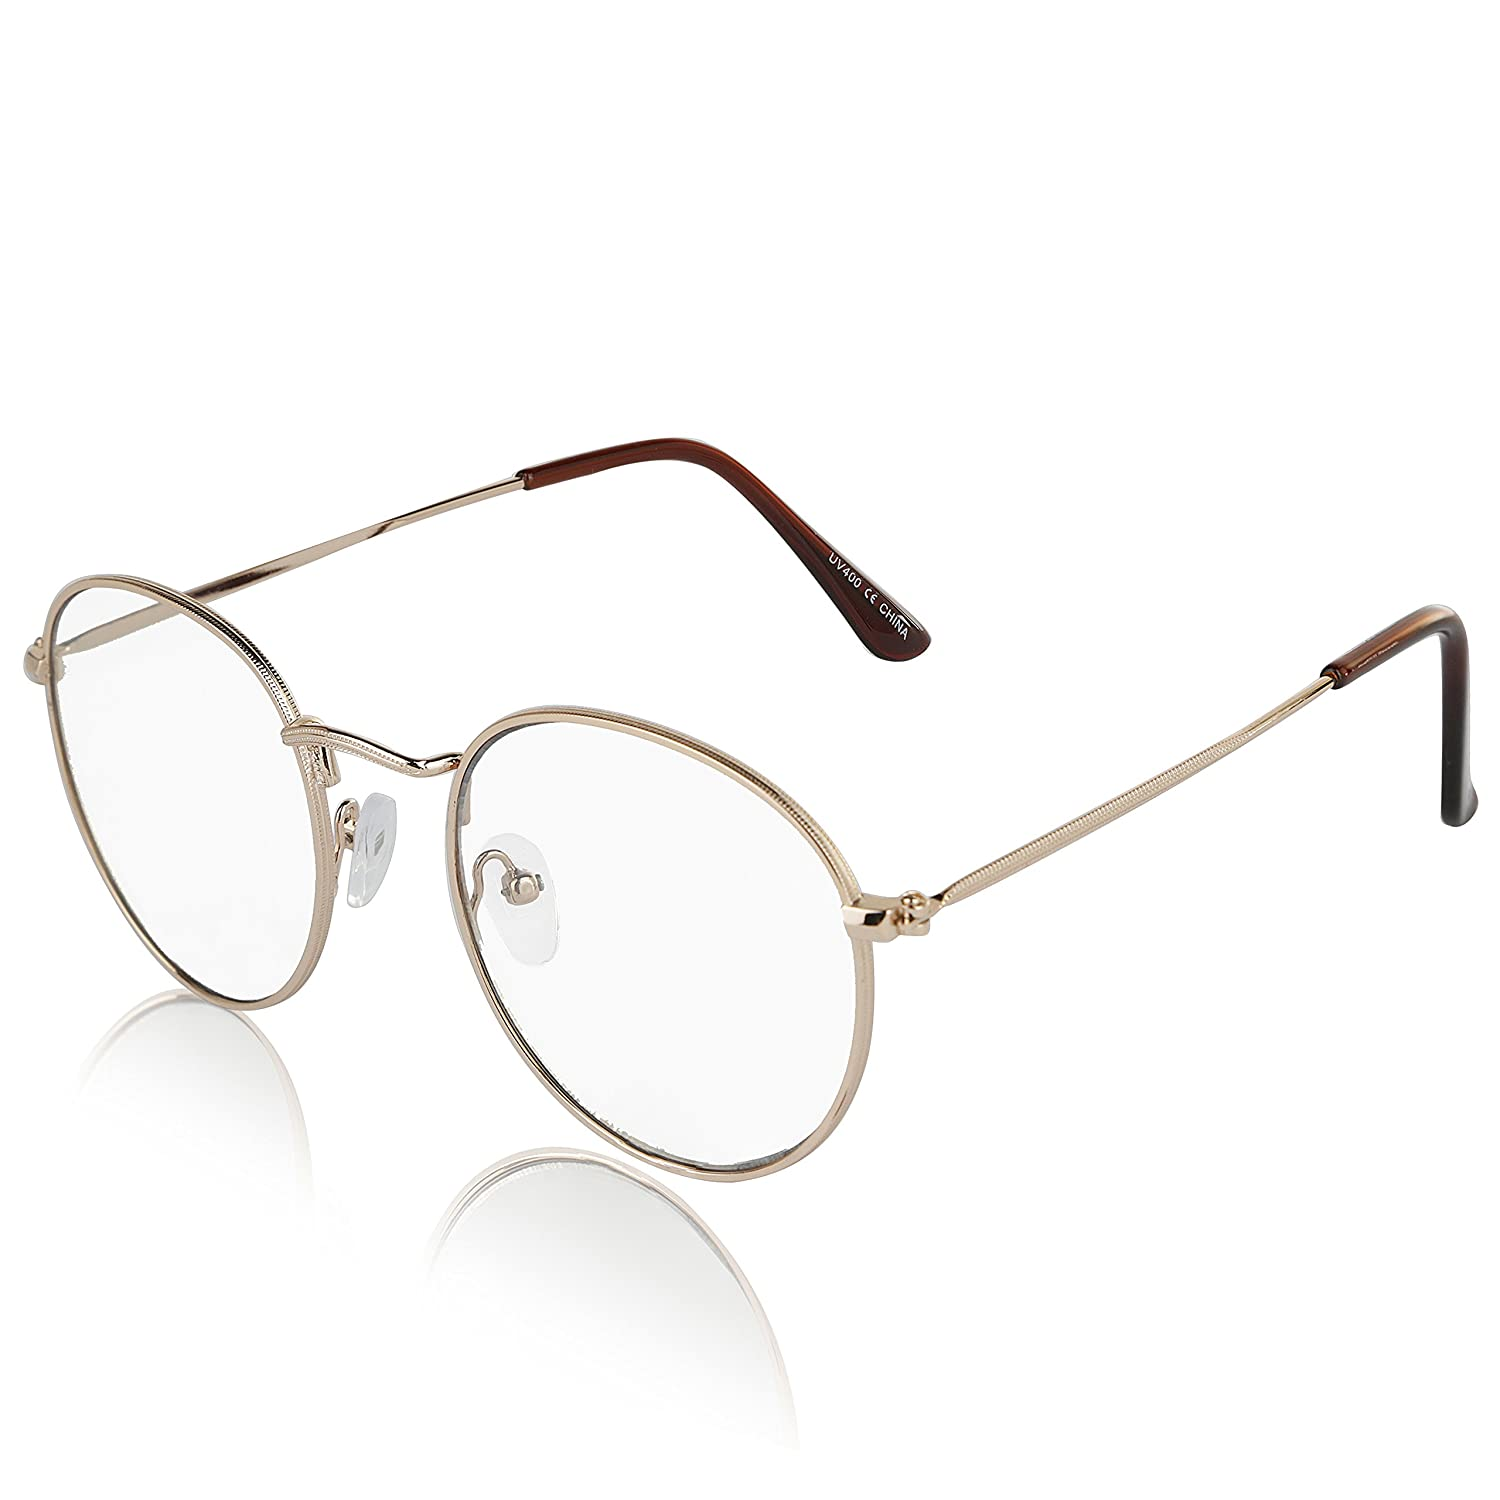 f6cc26005b30 Amazon.com  Non Prescription Retro Fake Clear Lens Gold Metal Frame  Eyeglasses Woman UV400  Clothing